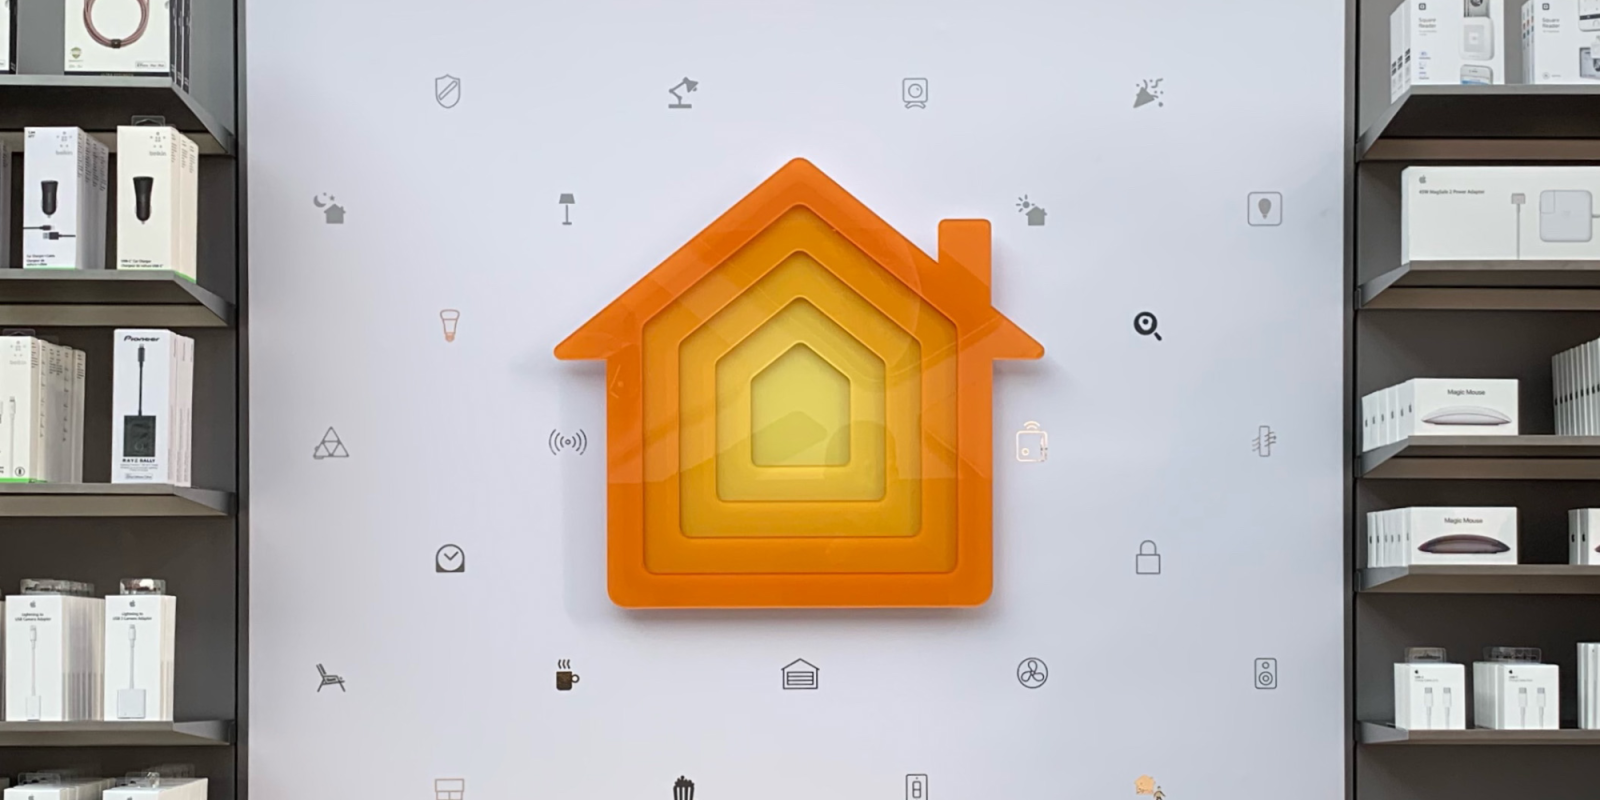 How To Build A Dream Homekit Home To Simplify Your Life 9to5mac